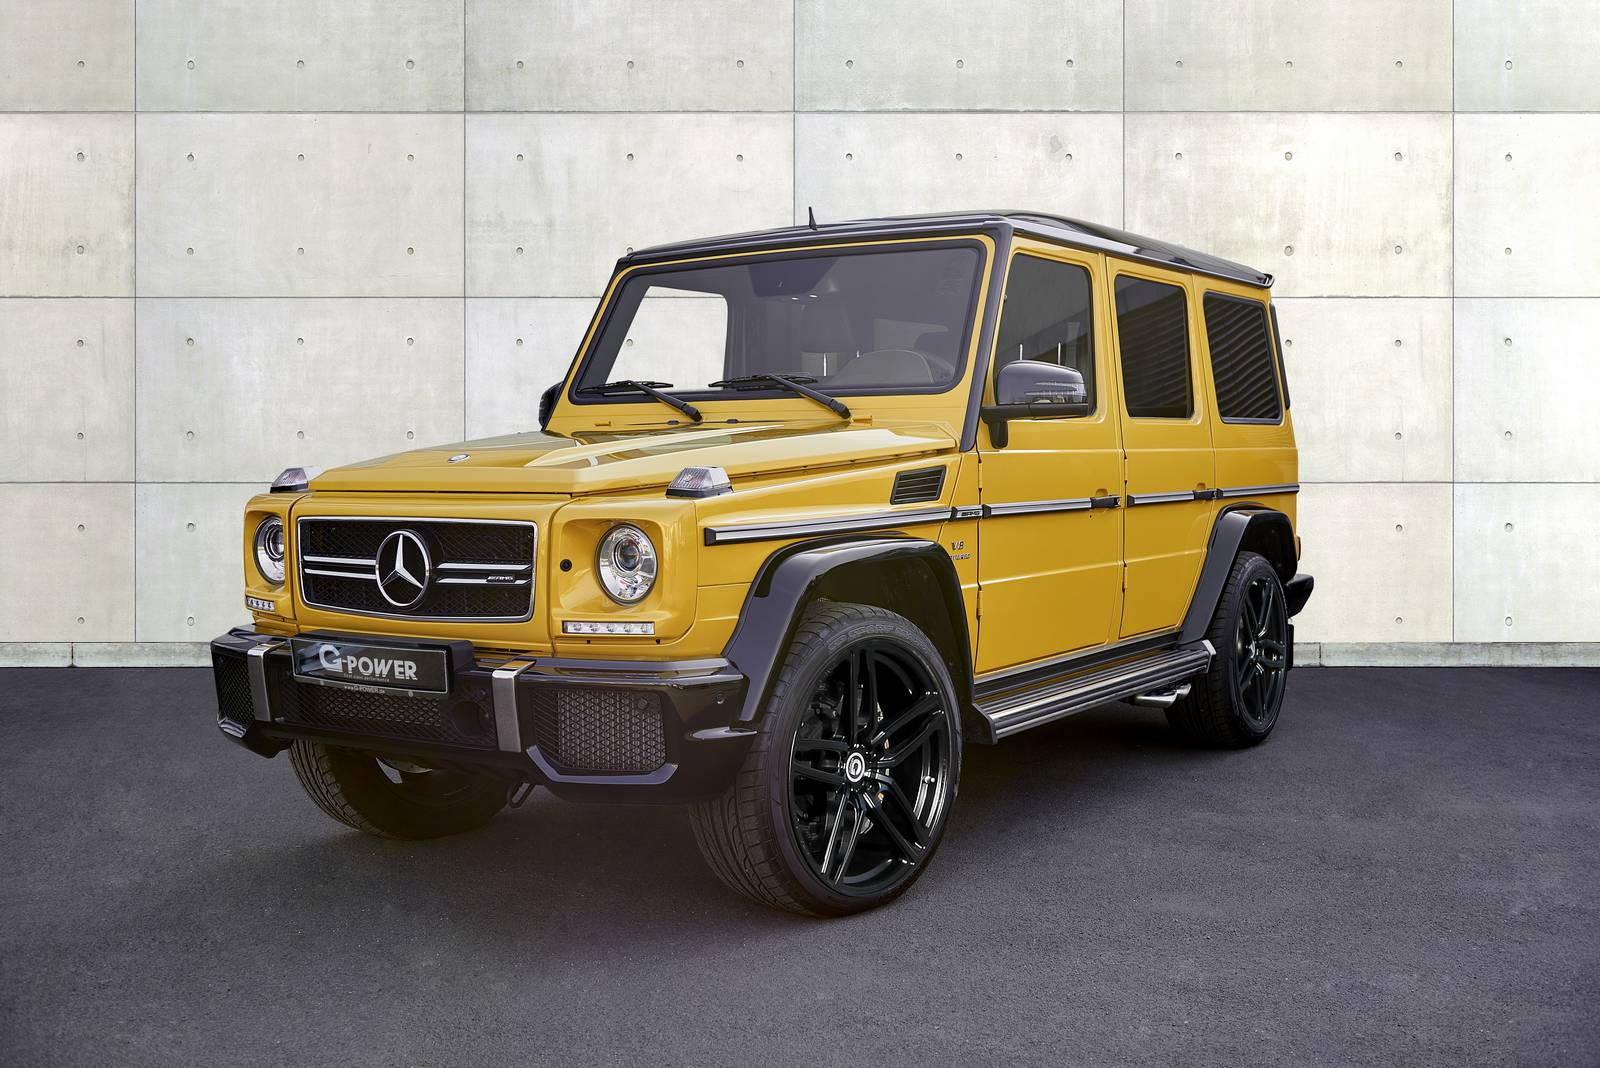 Official: G-Power Mercedes-Benz G63 AMG with 645hp